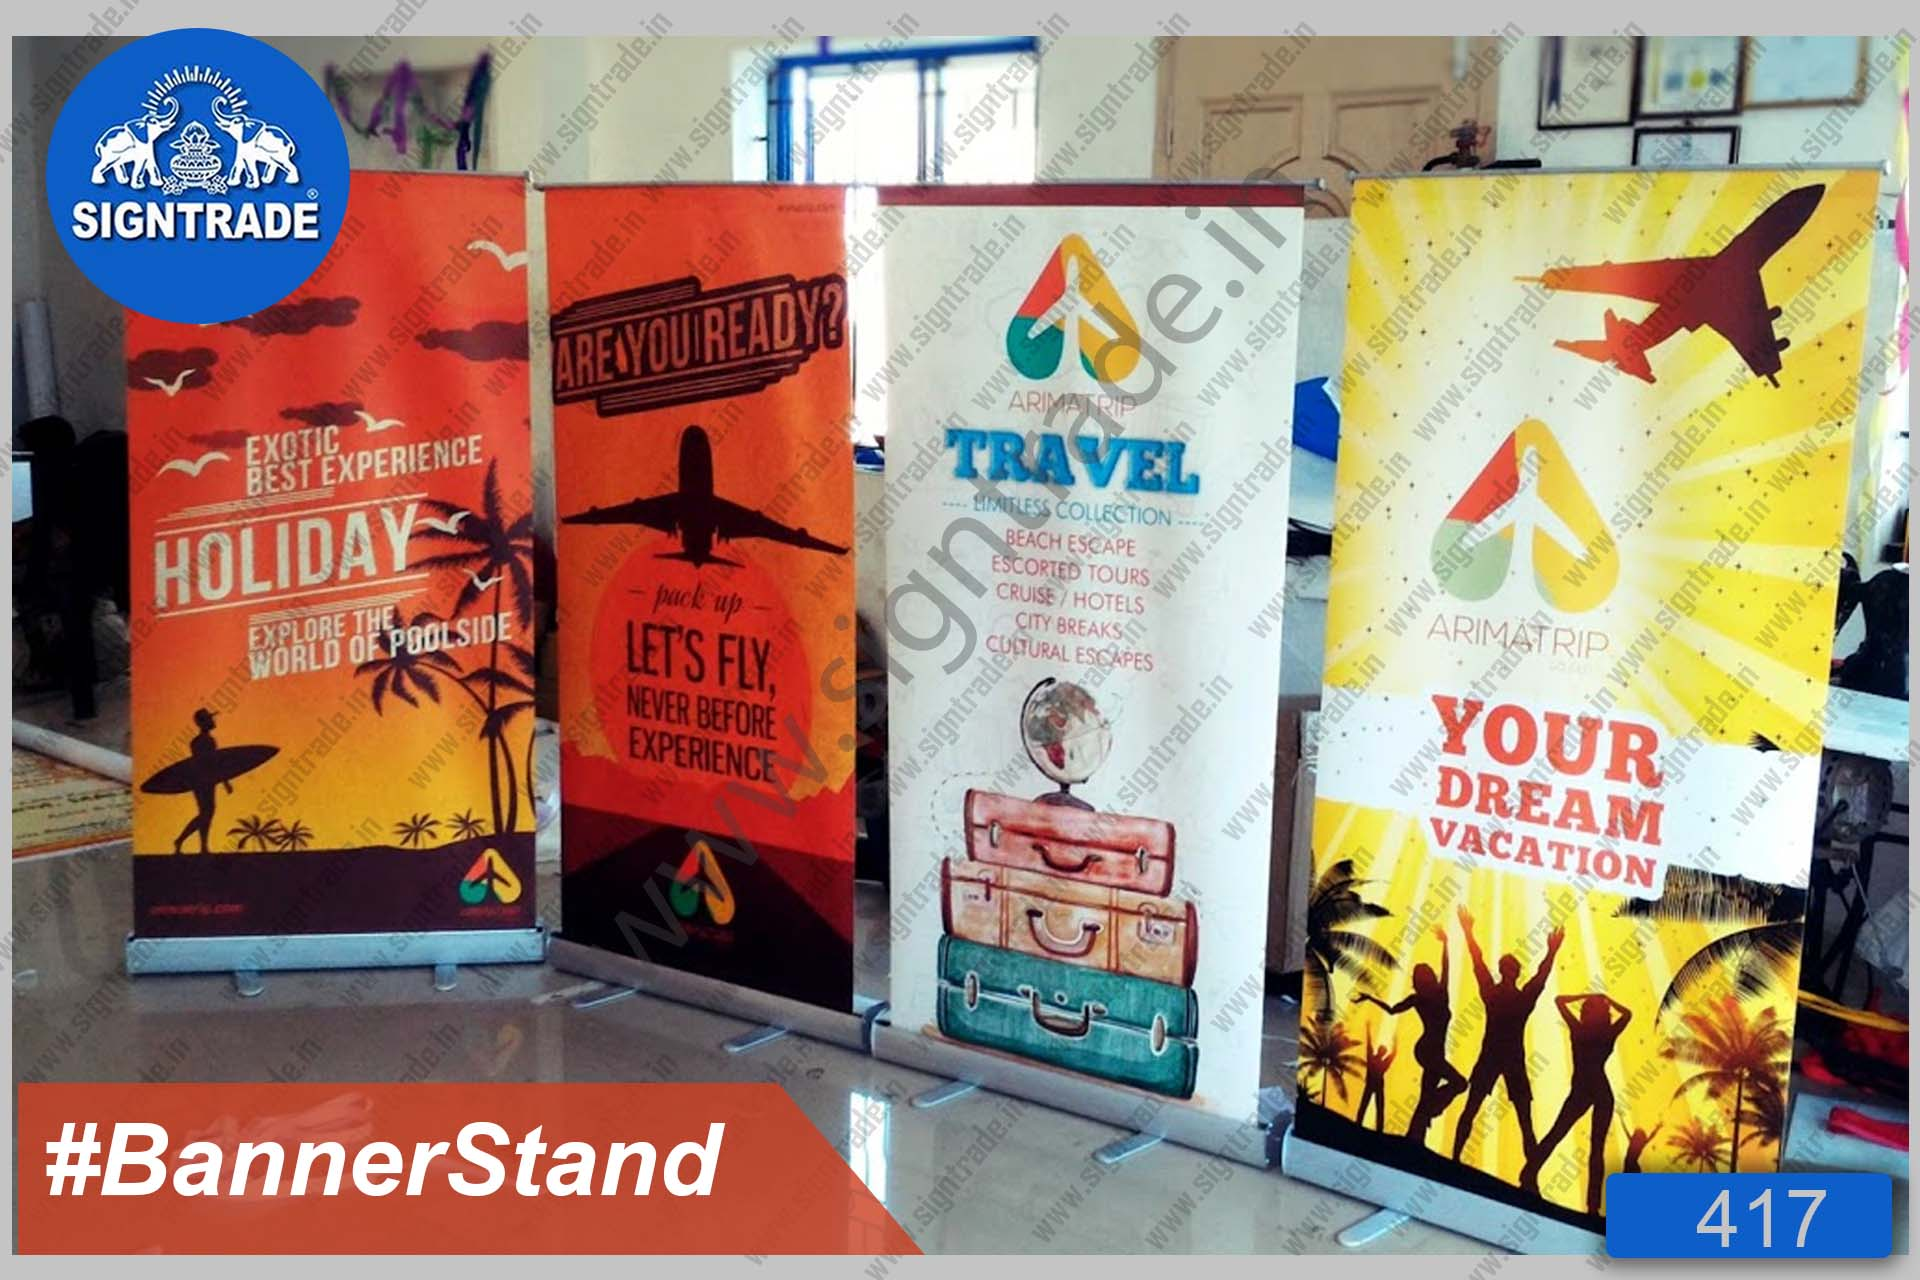 Travel - Roll Up Banner Stand